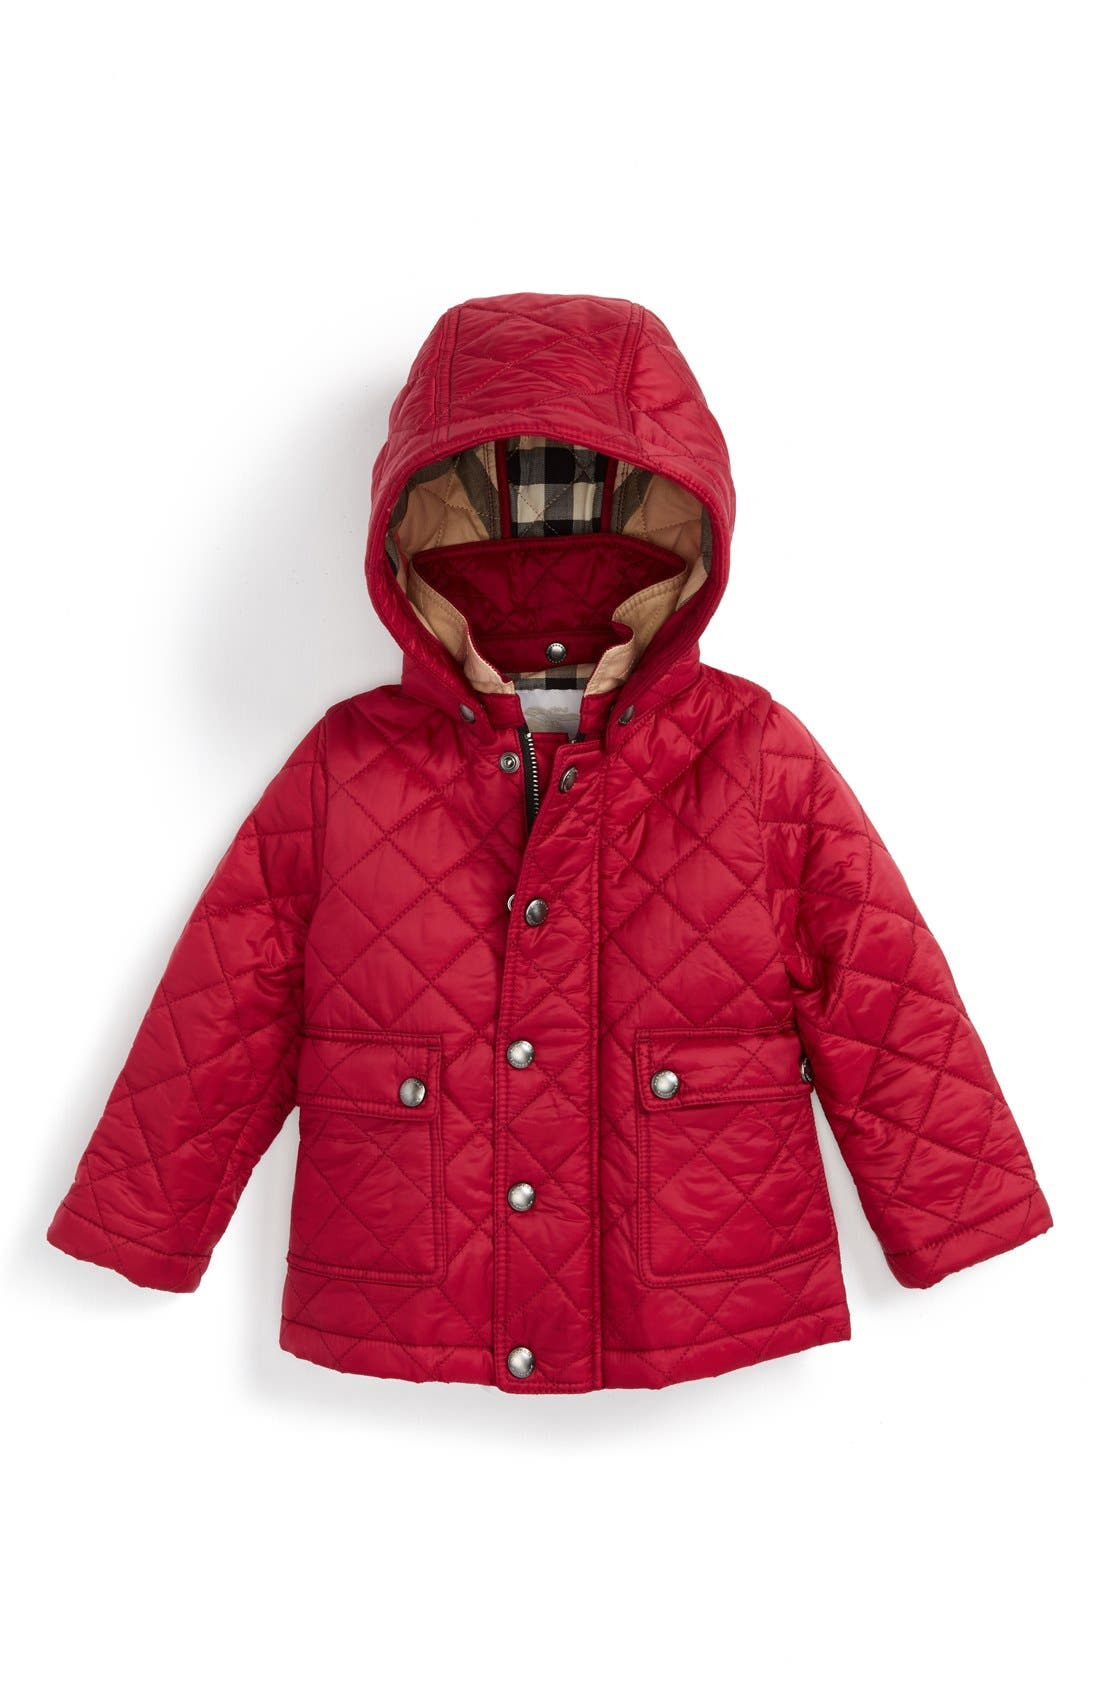 Main Image - Burberry 'Jamie' Quilted Hooded Puffer Jacket (Baby Girls)